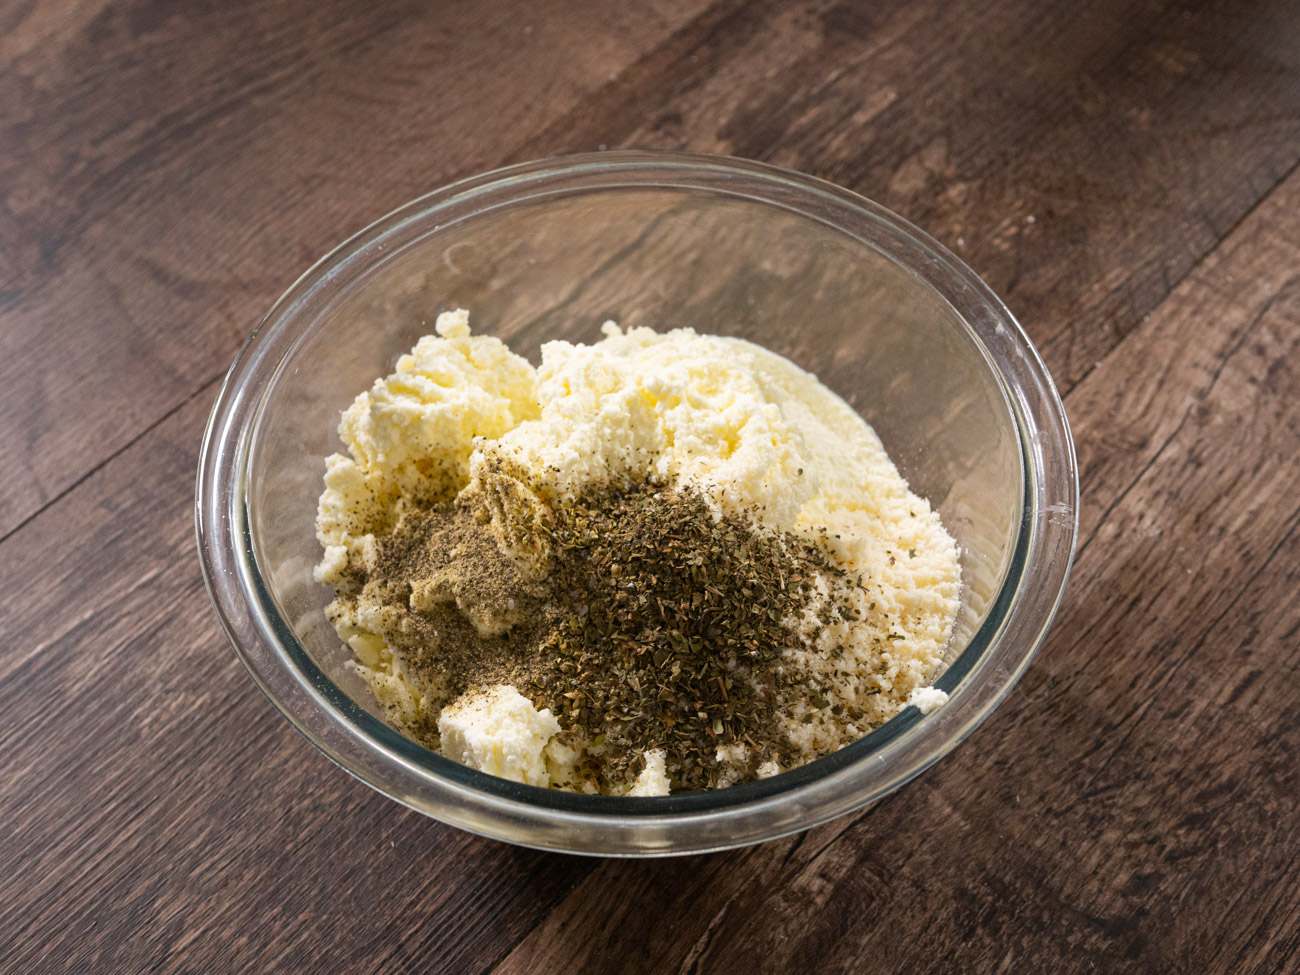 In a medium bowl, make the filling by mixing together ricotta, mozzarella, Parmesan, basil, oregano, and garlic. Season to taste with salt and pepper.